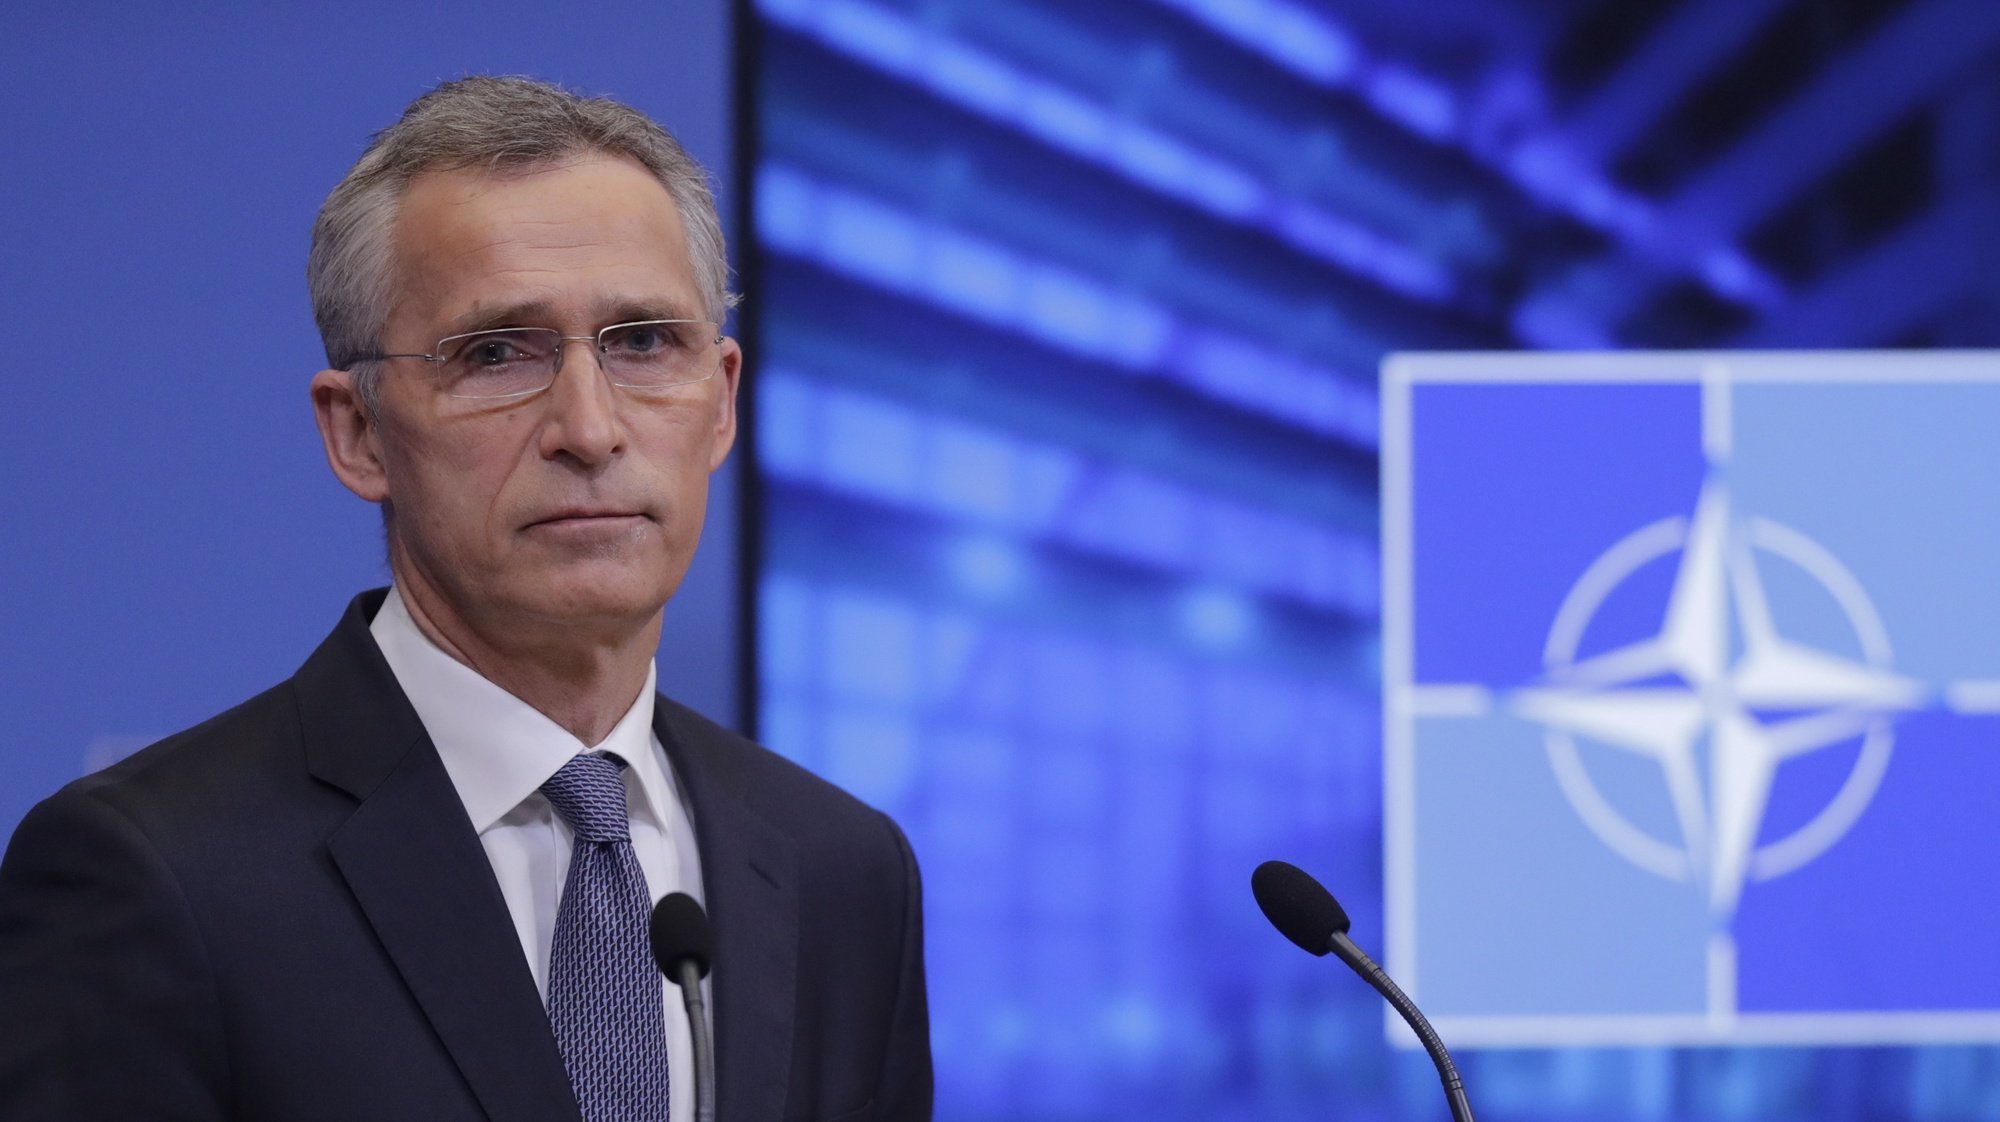 epa09093191 NATO Secretary General Jens Stoltenberg  gives a press briefing at the end of a NATO Foreign Ministers' meeting at the Alliance's headquarters in Brussels, Belgium, 24 March 2021. The foreign ministers met in person for the first time in more than a year as they preparing for an upcoming summit by discussing a set of proposals to reform the military alliance.  EPA/OLIVIER HOSLET / POOL